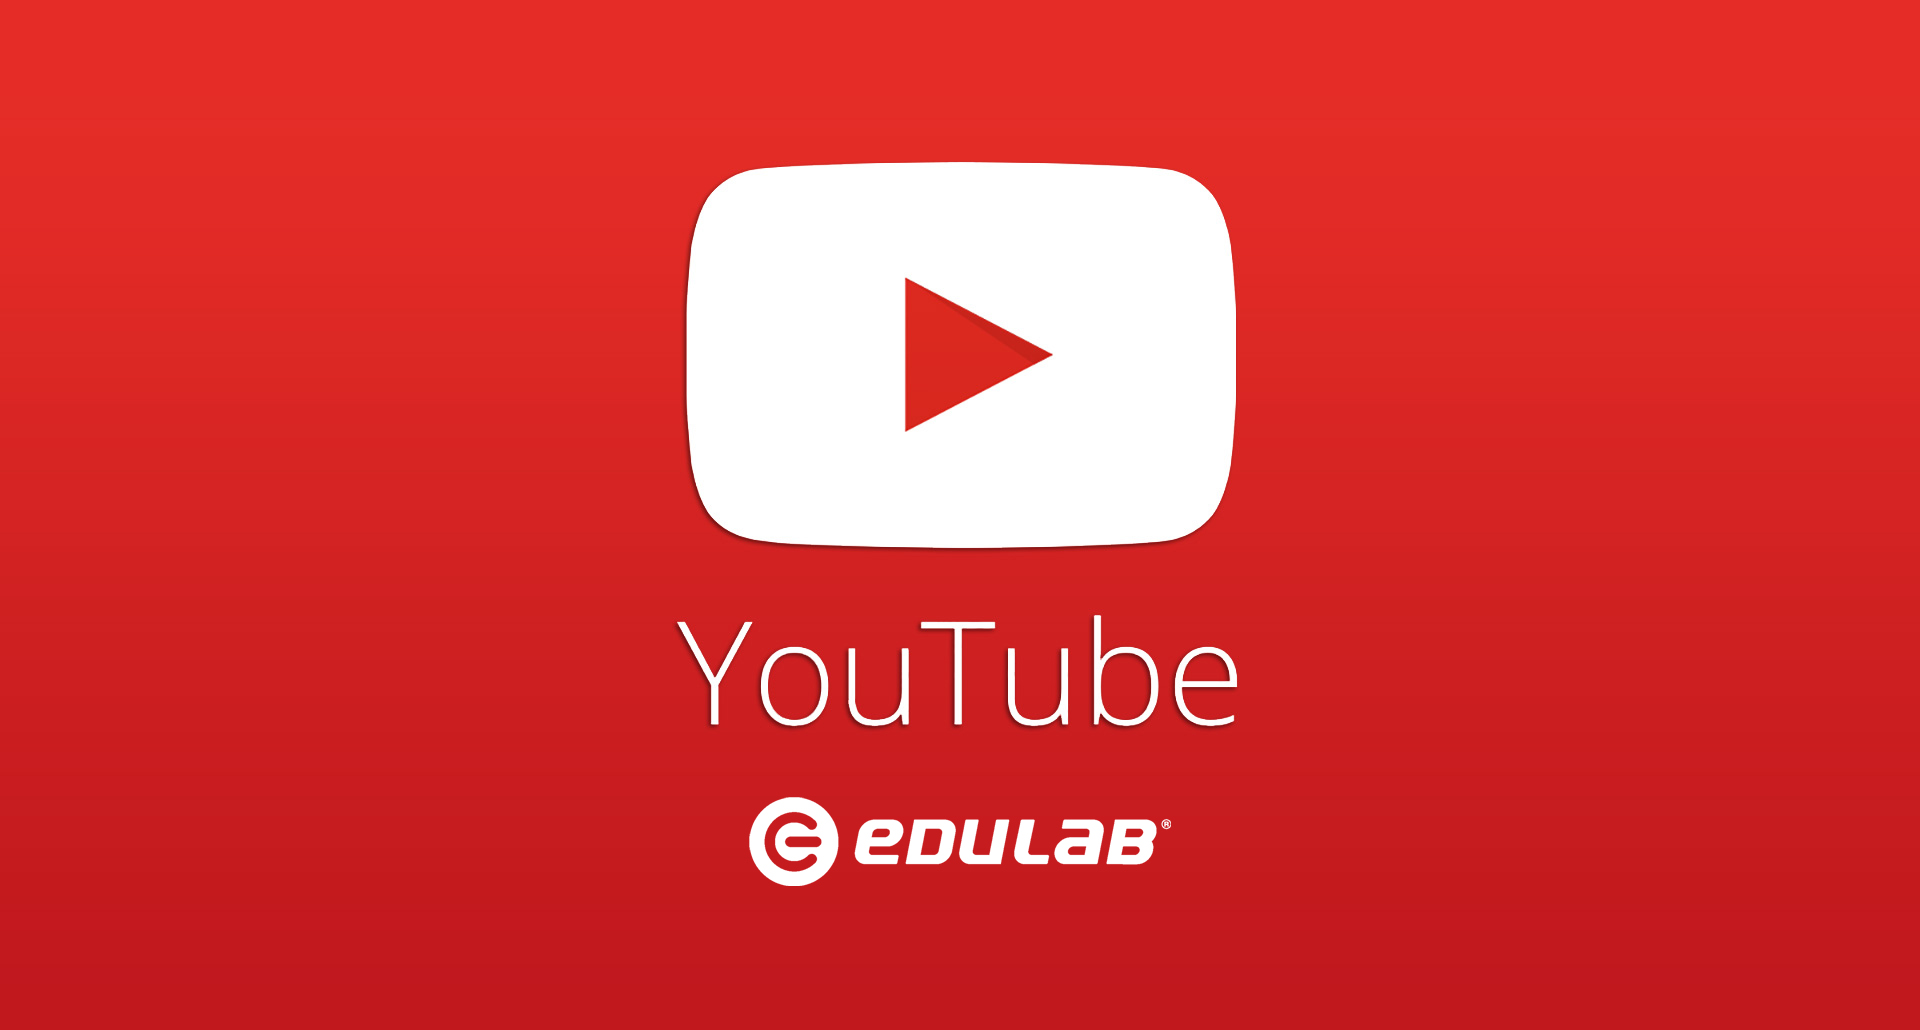 YouTube-edulab